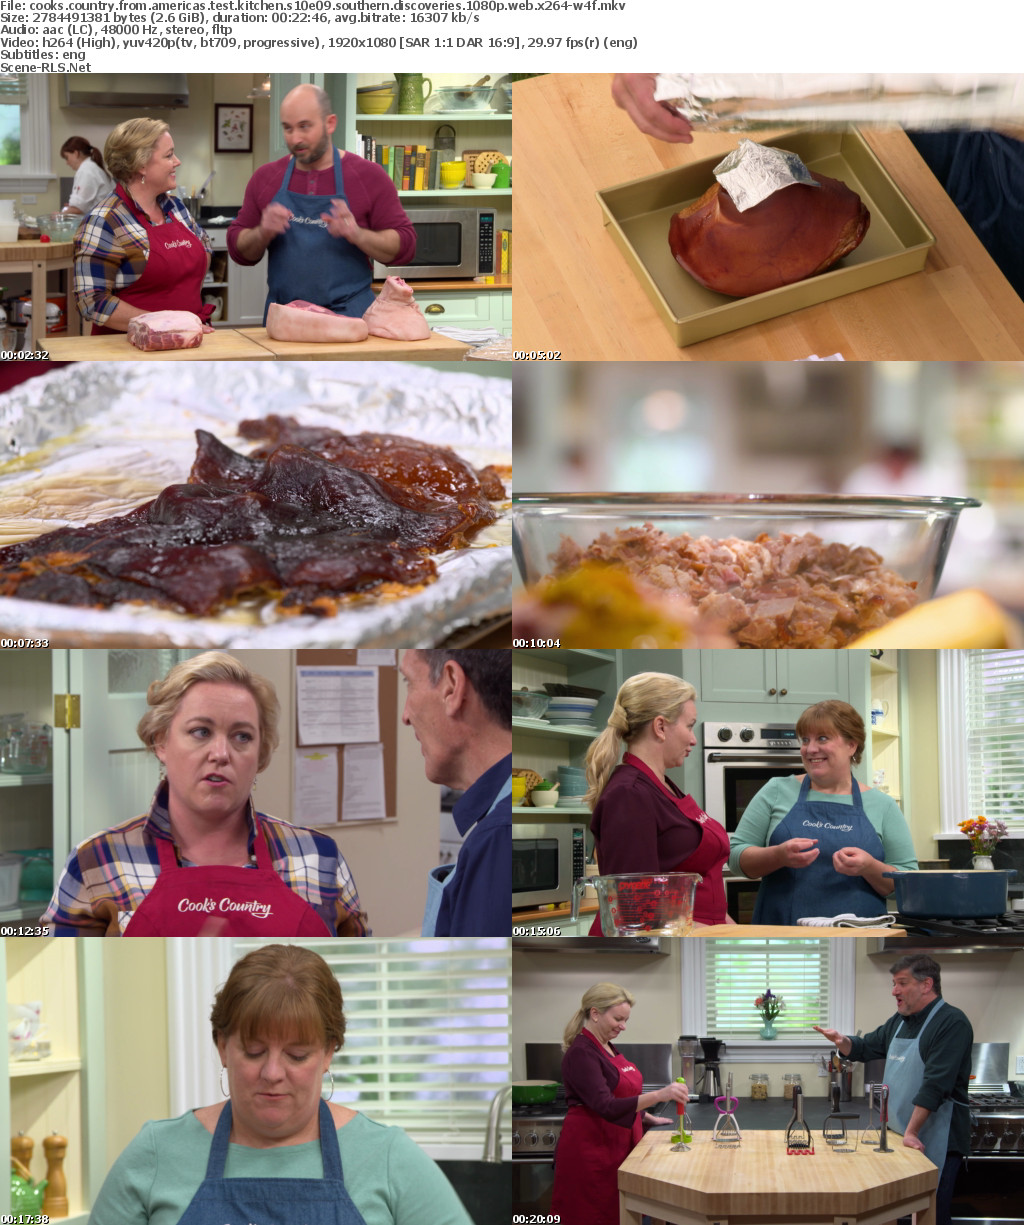 Cooks Country From Americas Test Kitchen S10e09 Southern